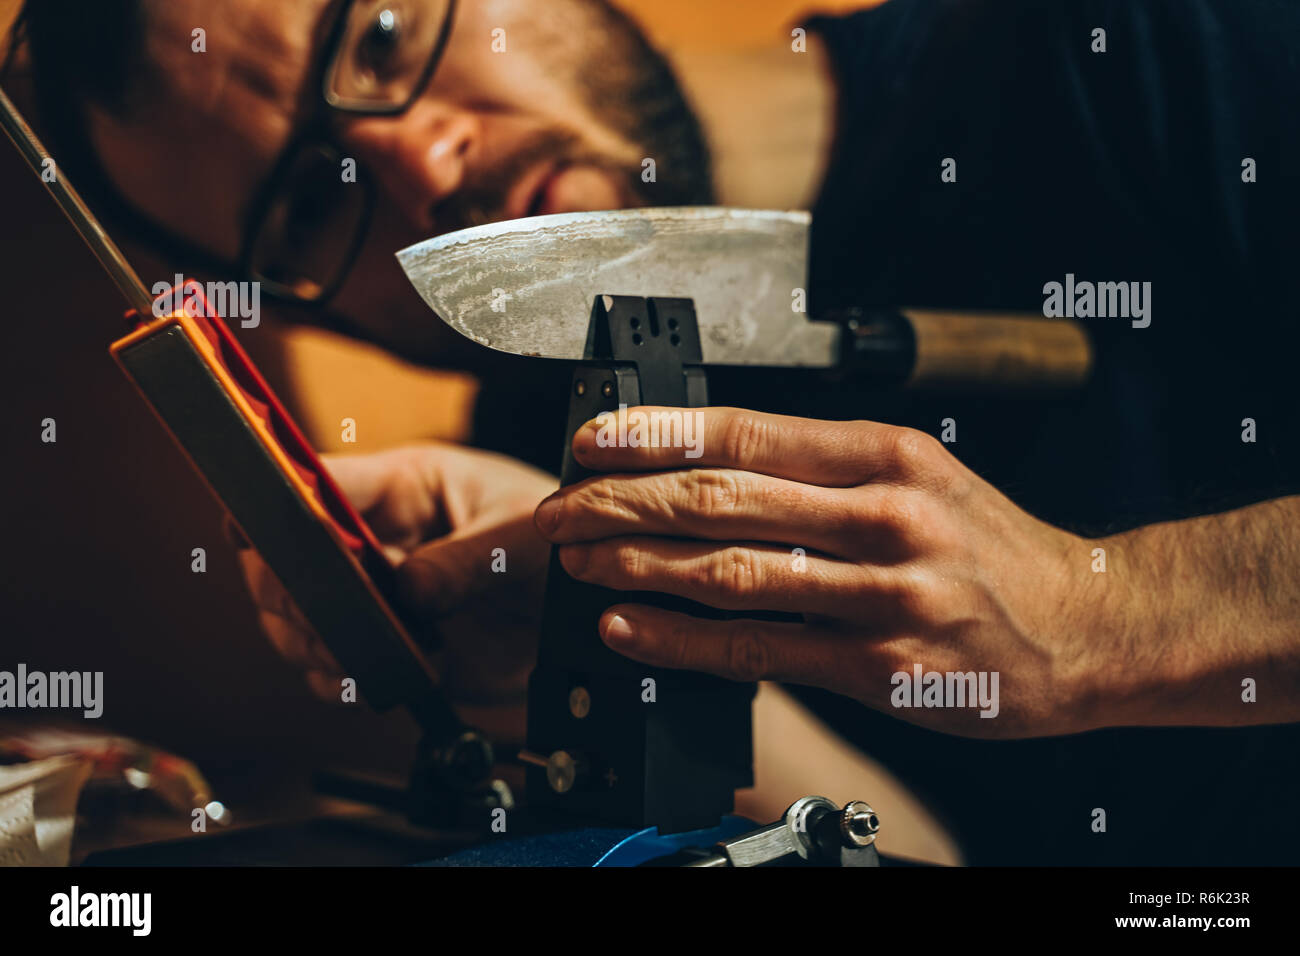 caucasian man sharpening a japanese kitchen knife with a modern whetstone device - Stock Image